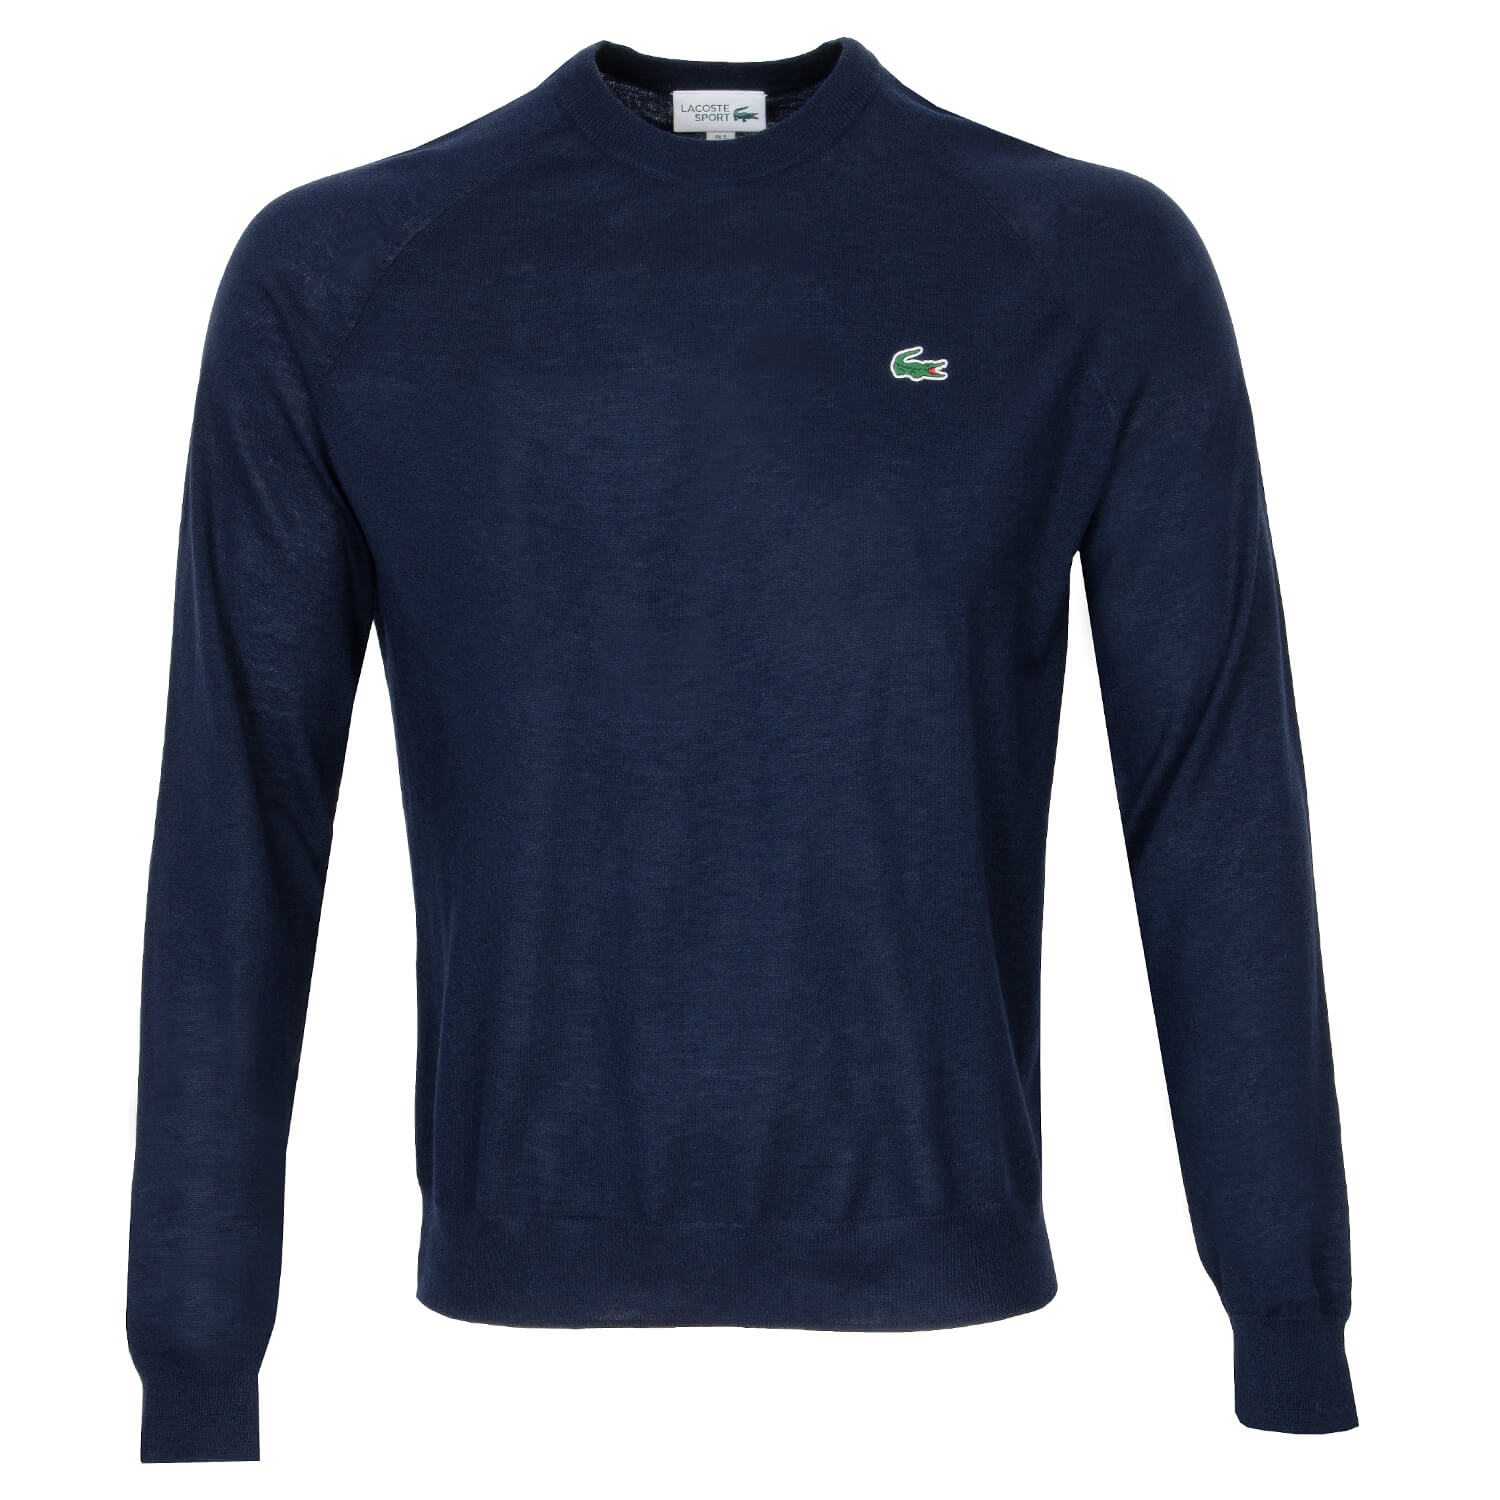 Image of Lacoste Solid Breathable Knit Crew Neck Sweater